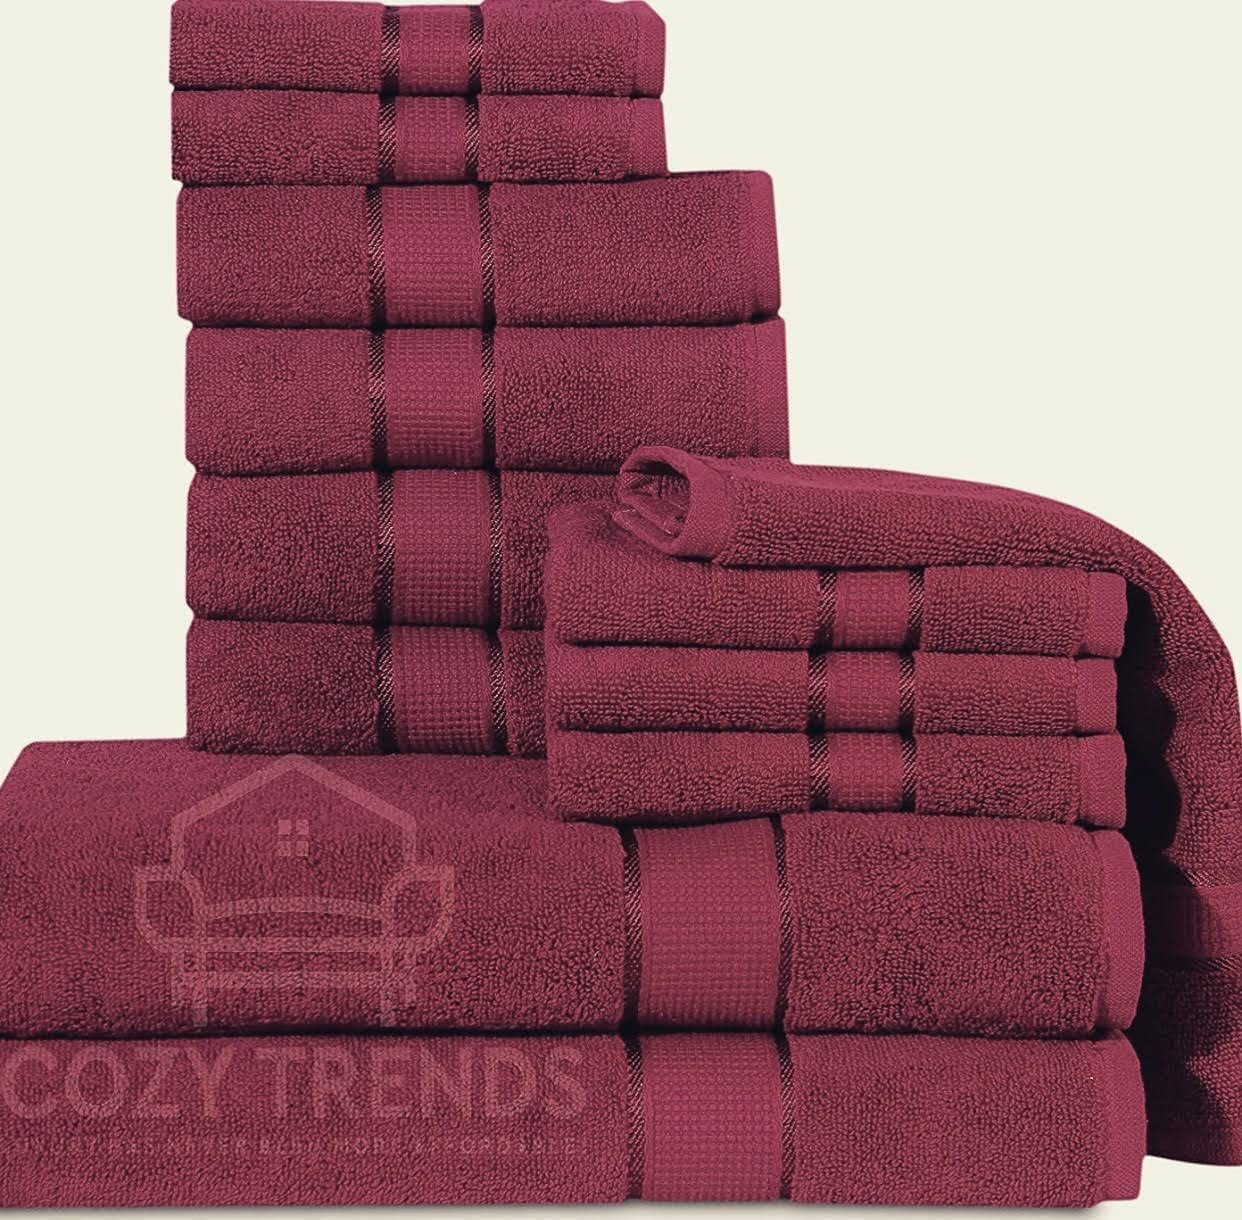 Cozy Home Collection Cotton Absorbent GSM Limited time Some reservation sale 12 600 Piece Bathroom